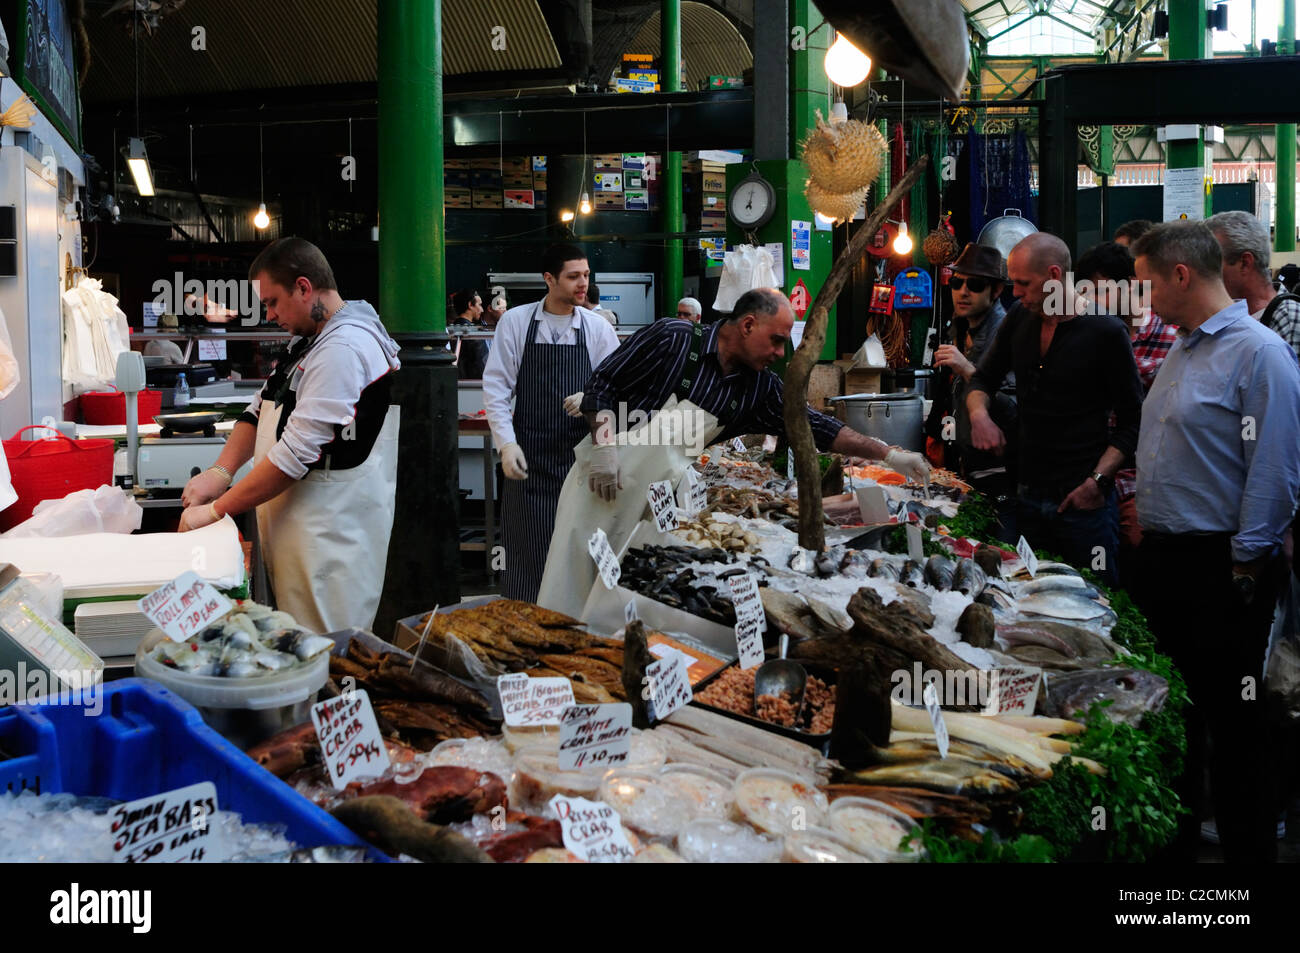 Fishmongers stall at Borough Market, Southwark, London, England, UK - Stock Image